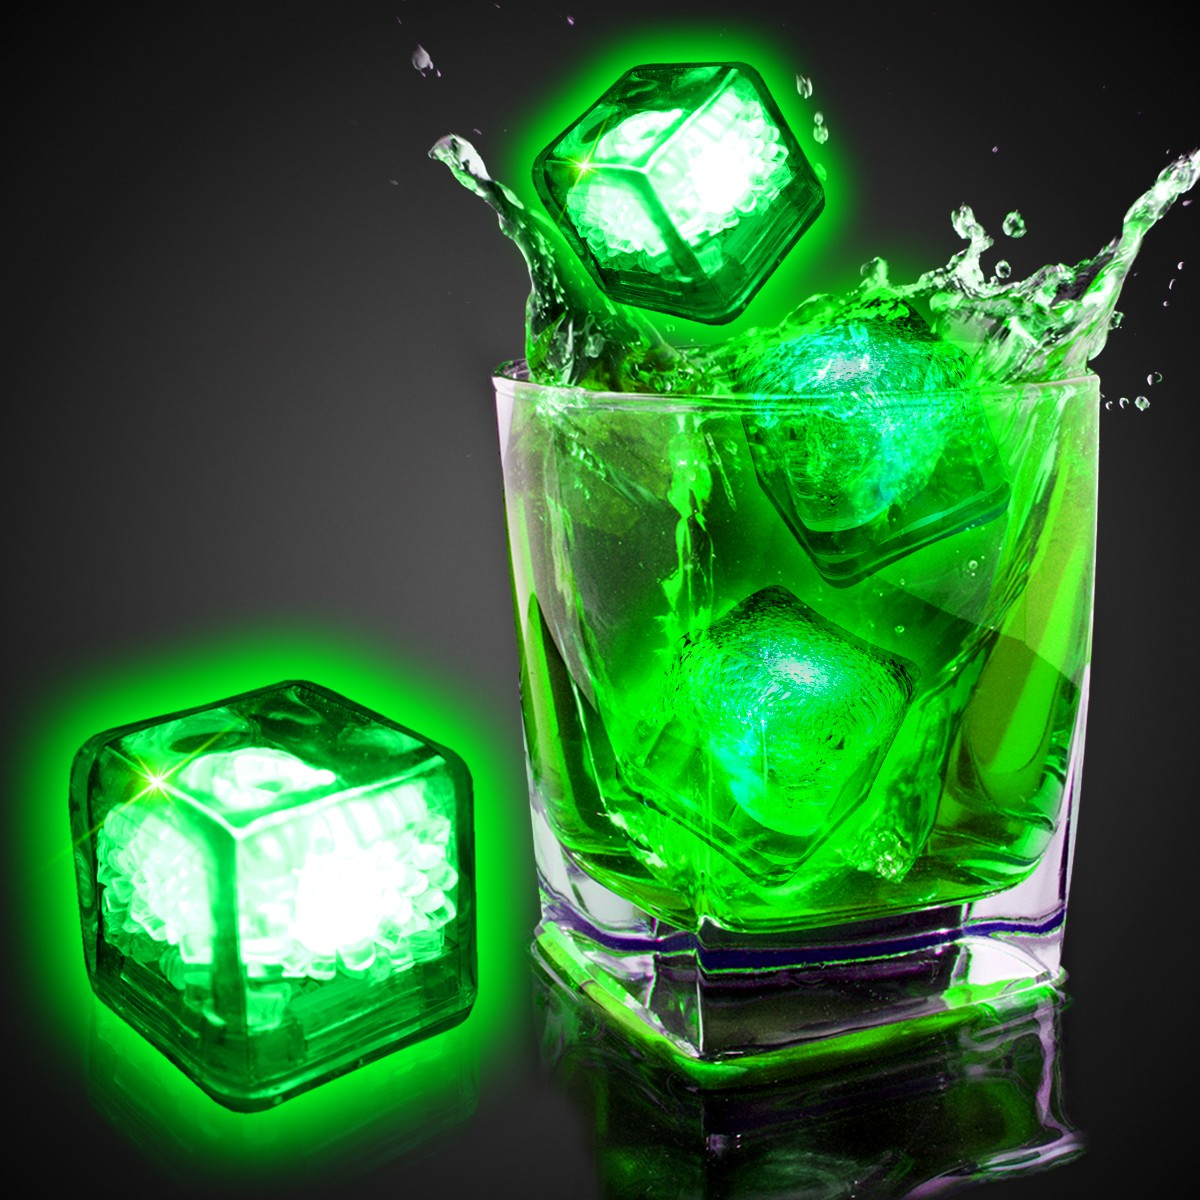 Blank Green Liquid Activated Light Up Ice Cubes - Green - Shop by Color